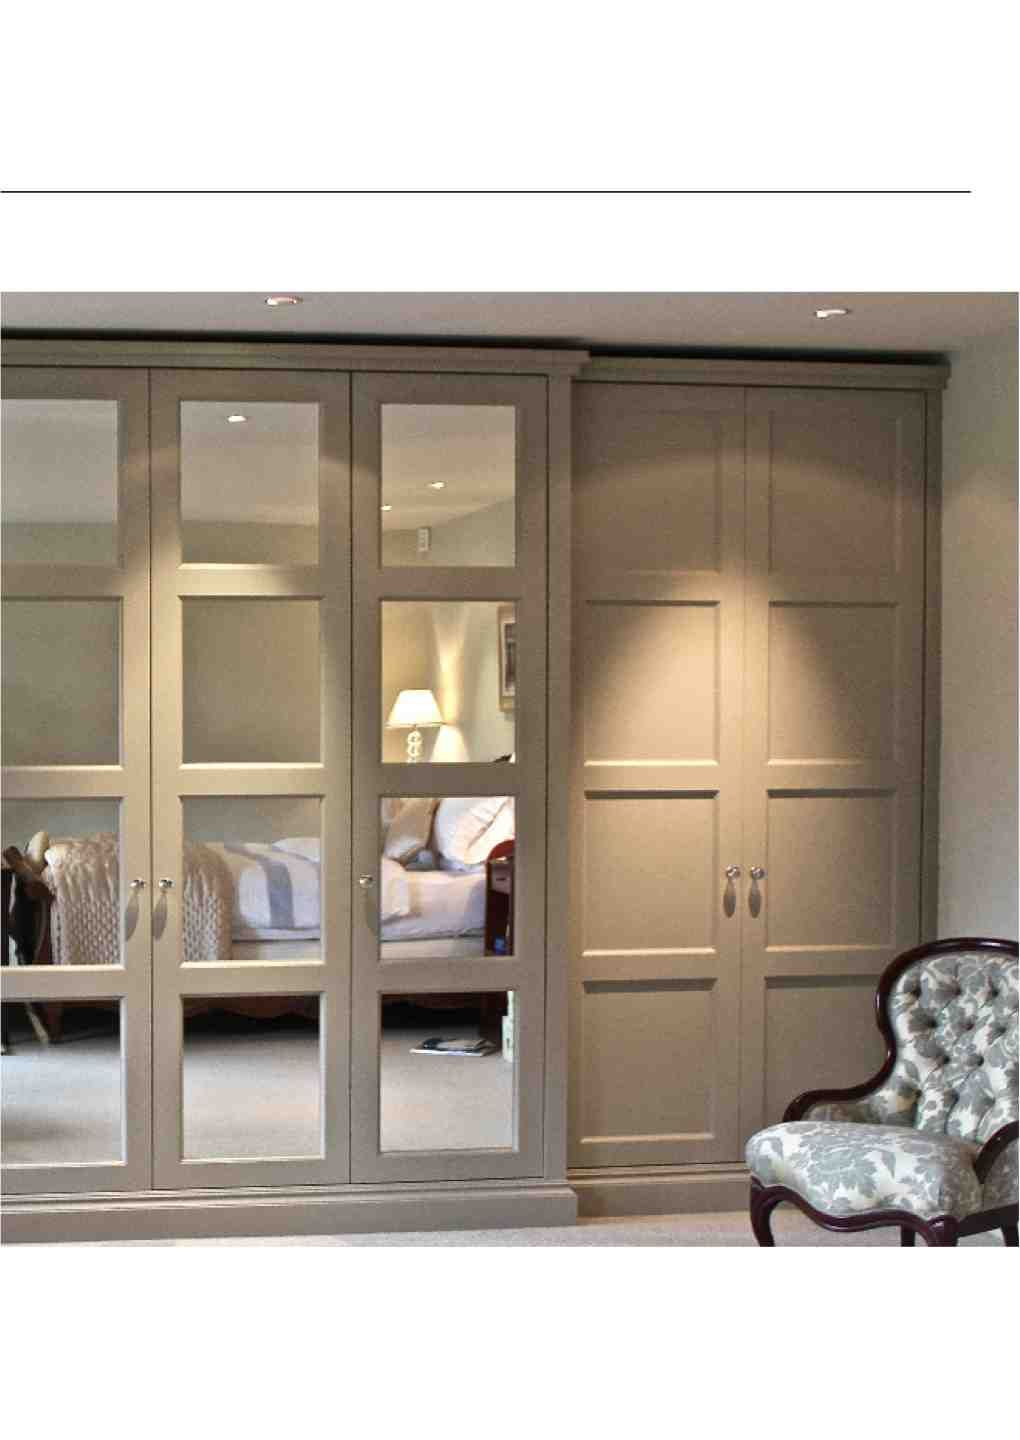 Maybe Put In New Mirrored Bic Master Brm With Door On End Being Bedroom Built WardrobeFitted